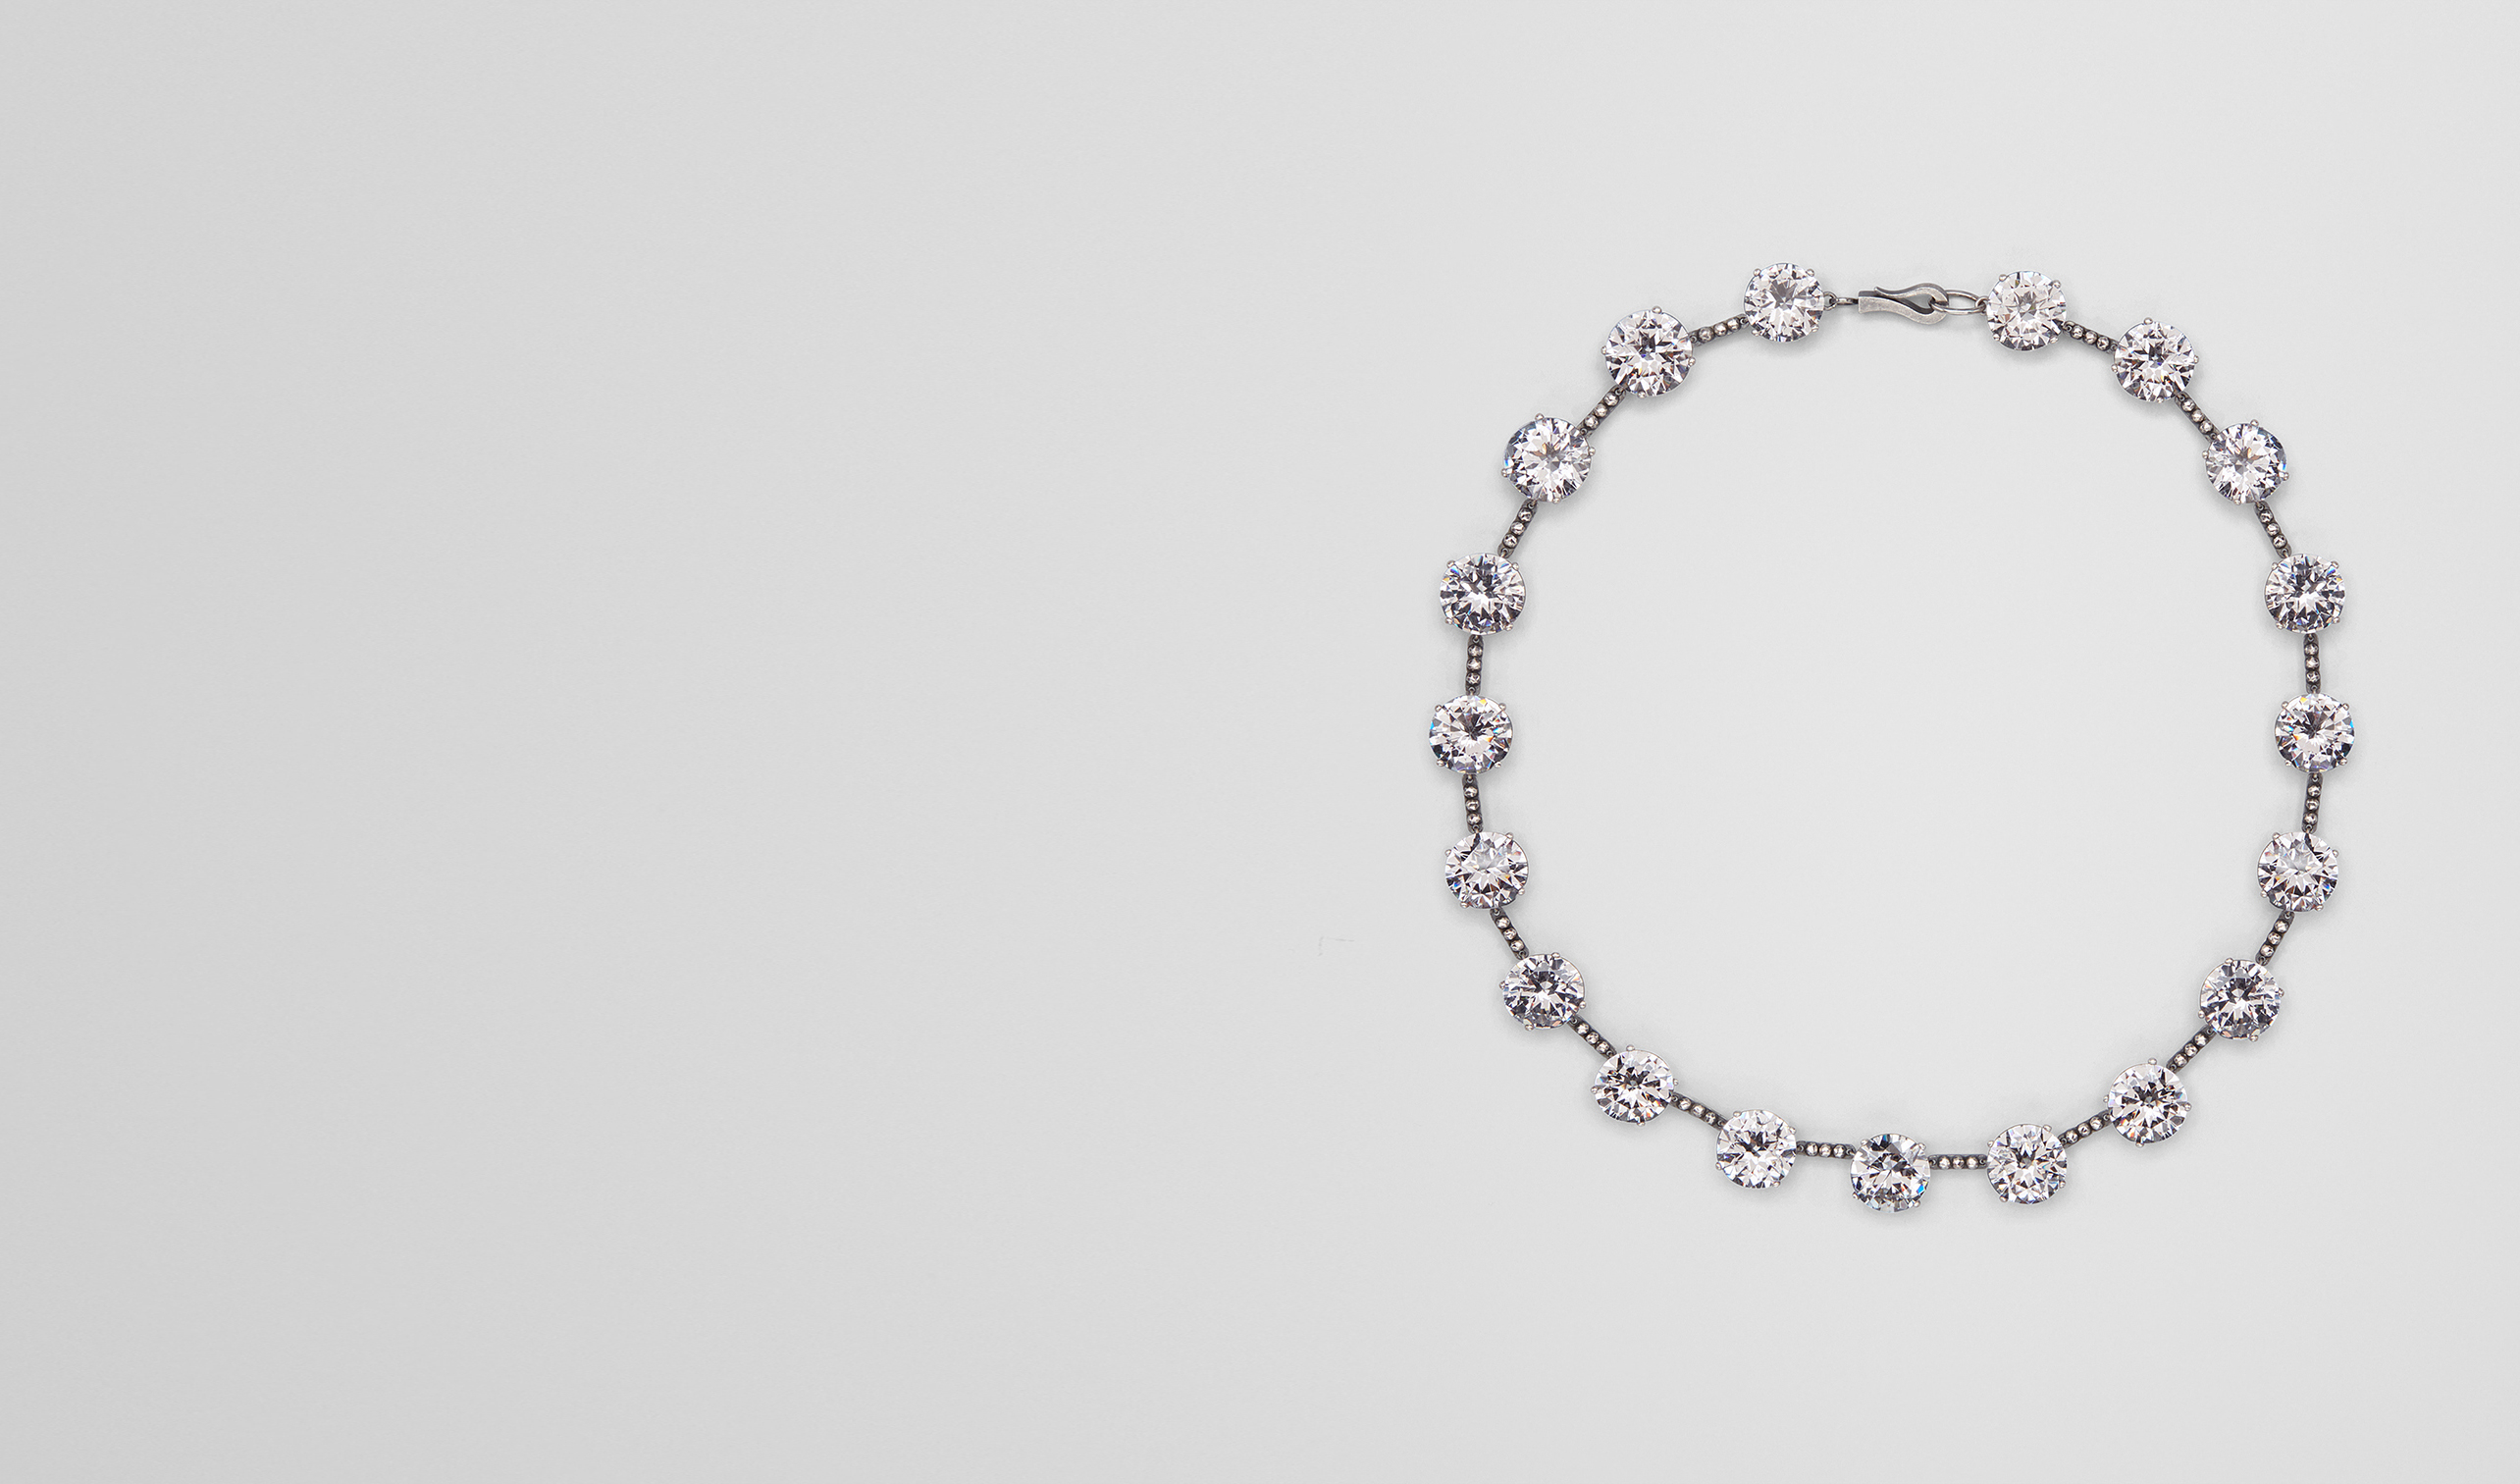 BOTTEGA VENETA Necklace D NECKLACE IN SILVER AND STONES pl